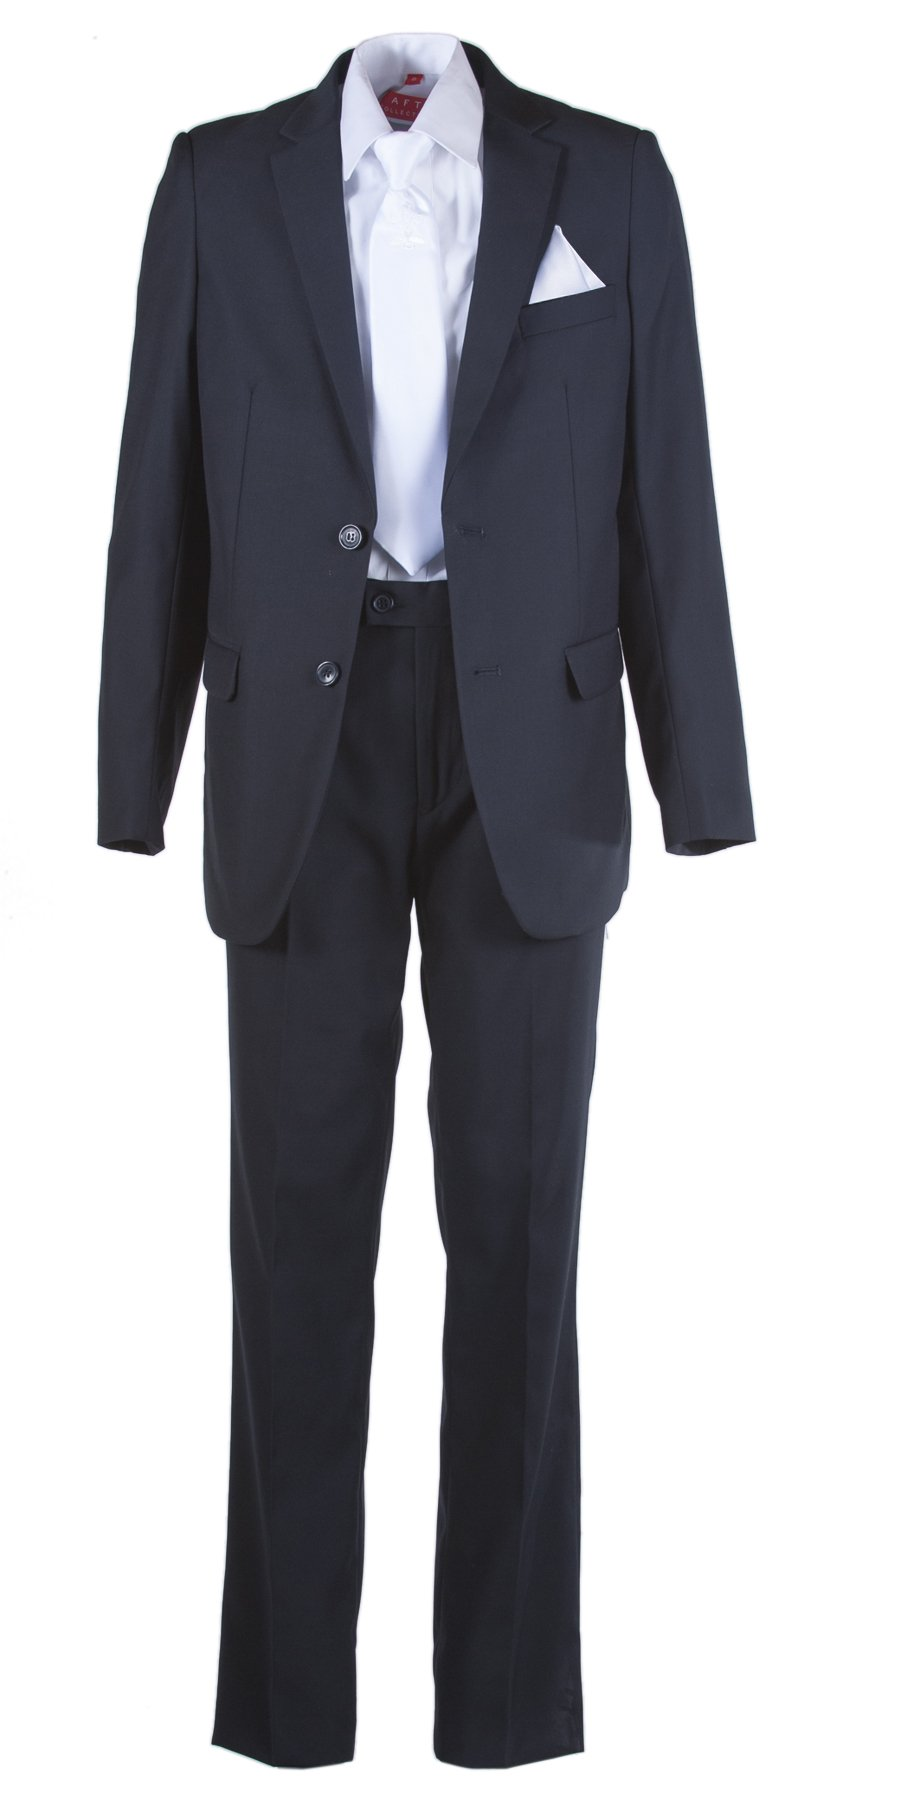 Boys Slim Fit Navy Suit, White Communion Cross Tie, Suspenders & Handkerchief (10 Boys)